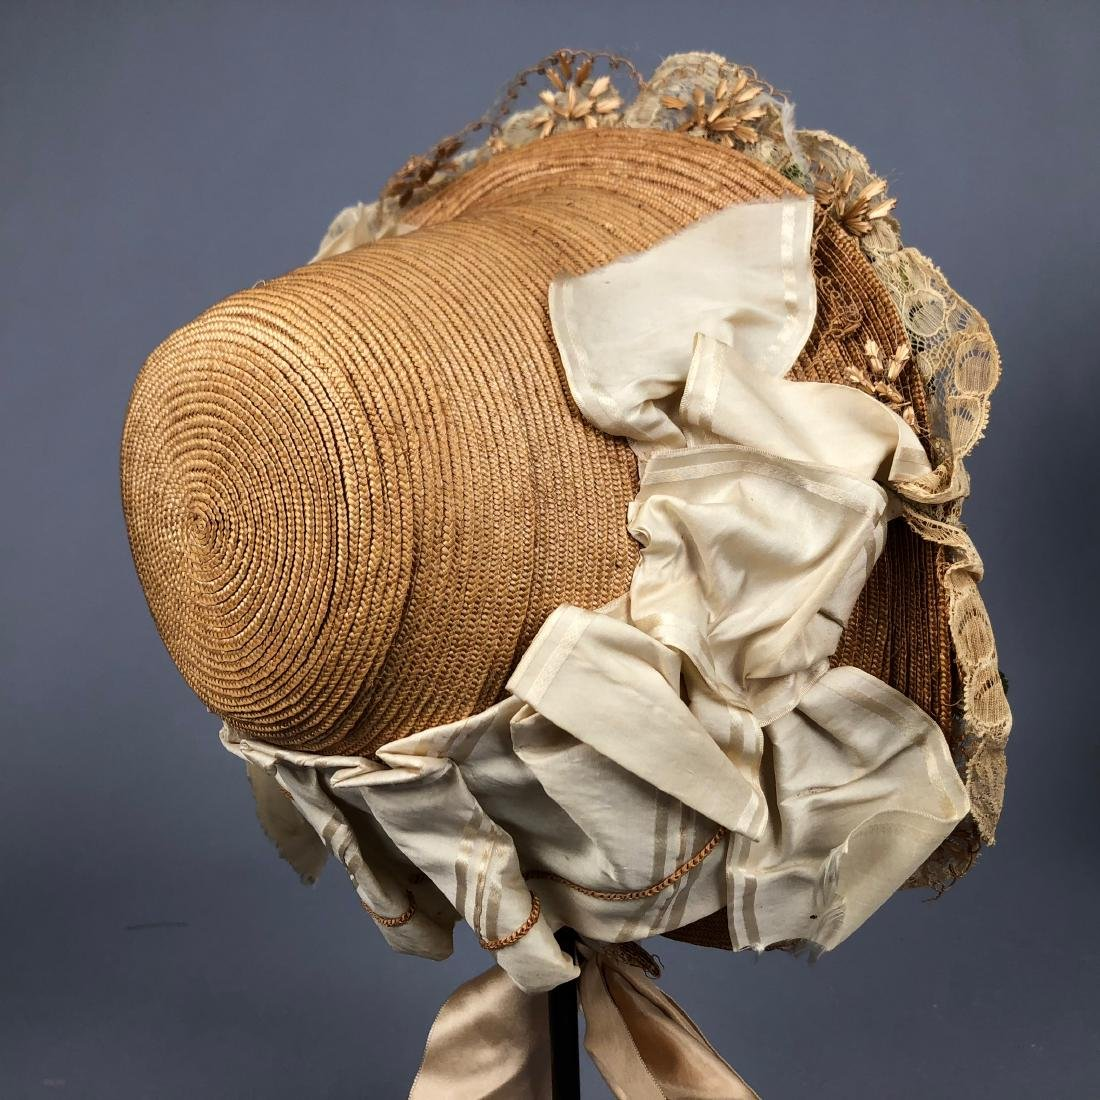 TAN STRAW LADY'S BONNET and GIRL'S HAT, 1850 - 1855 - 8